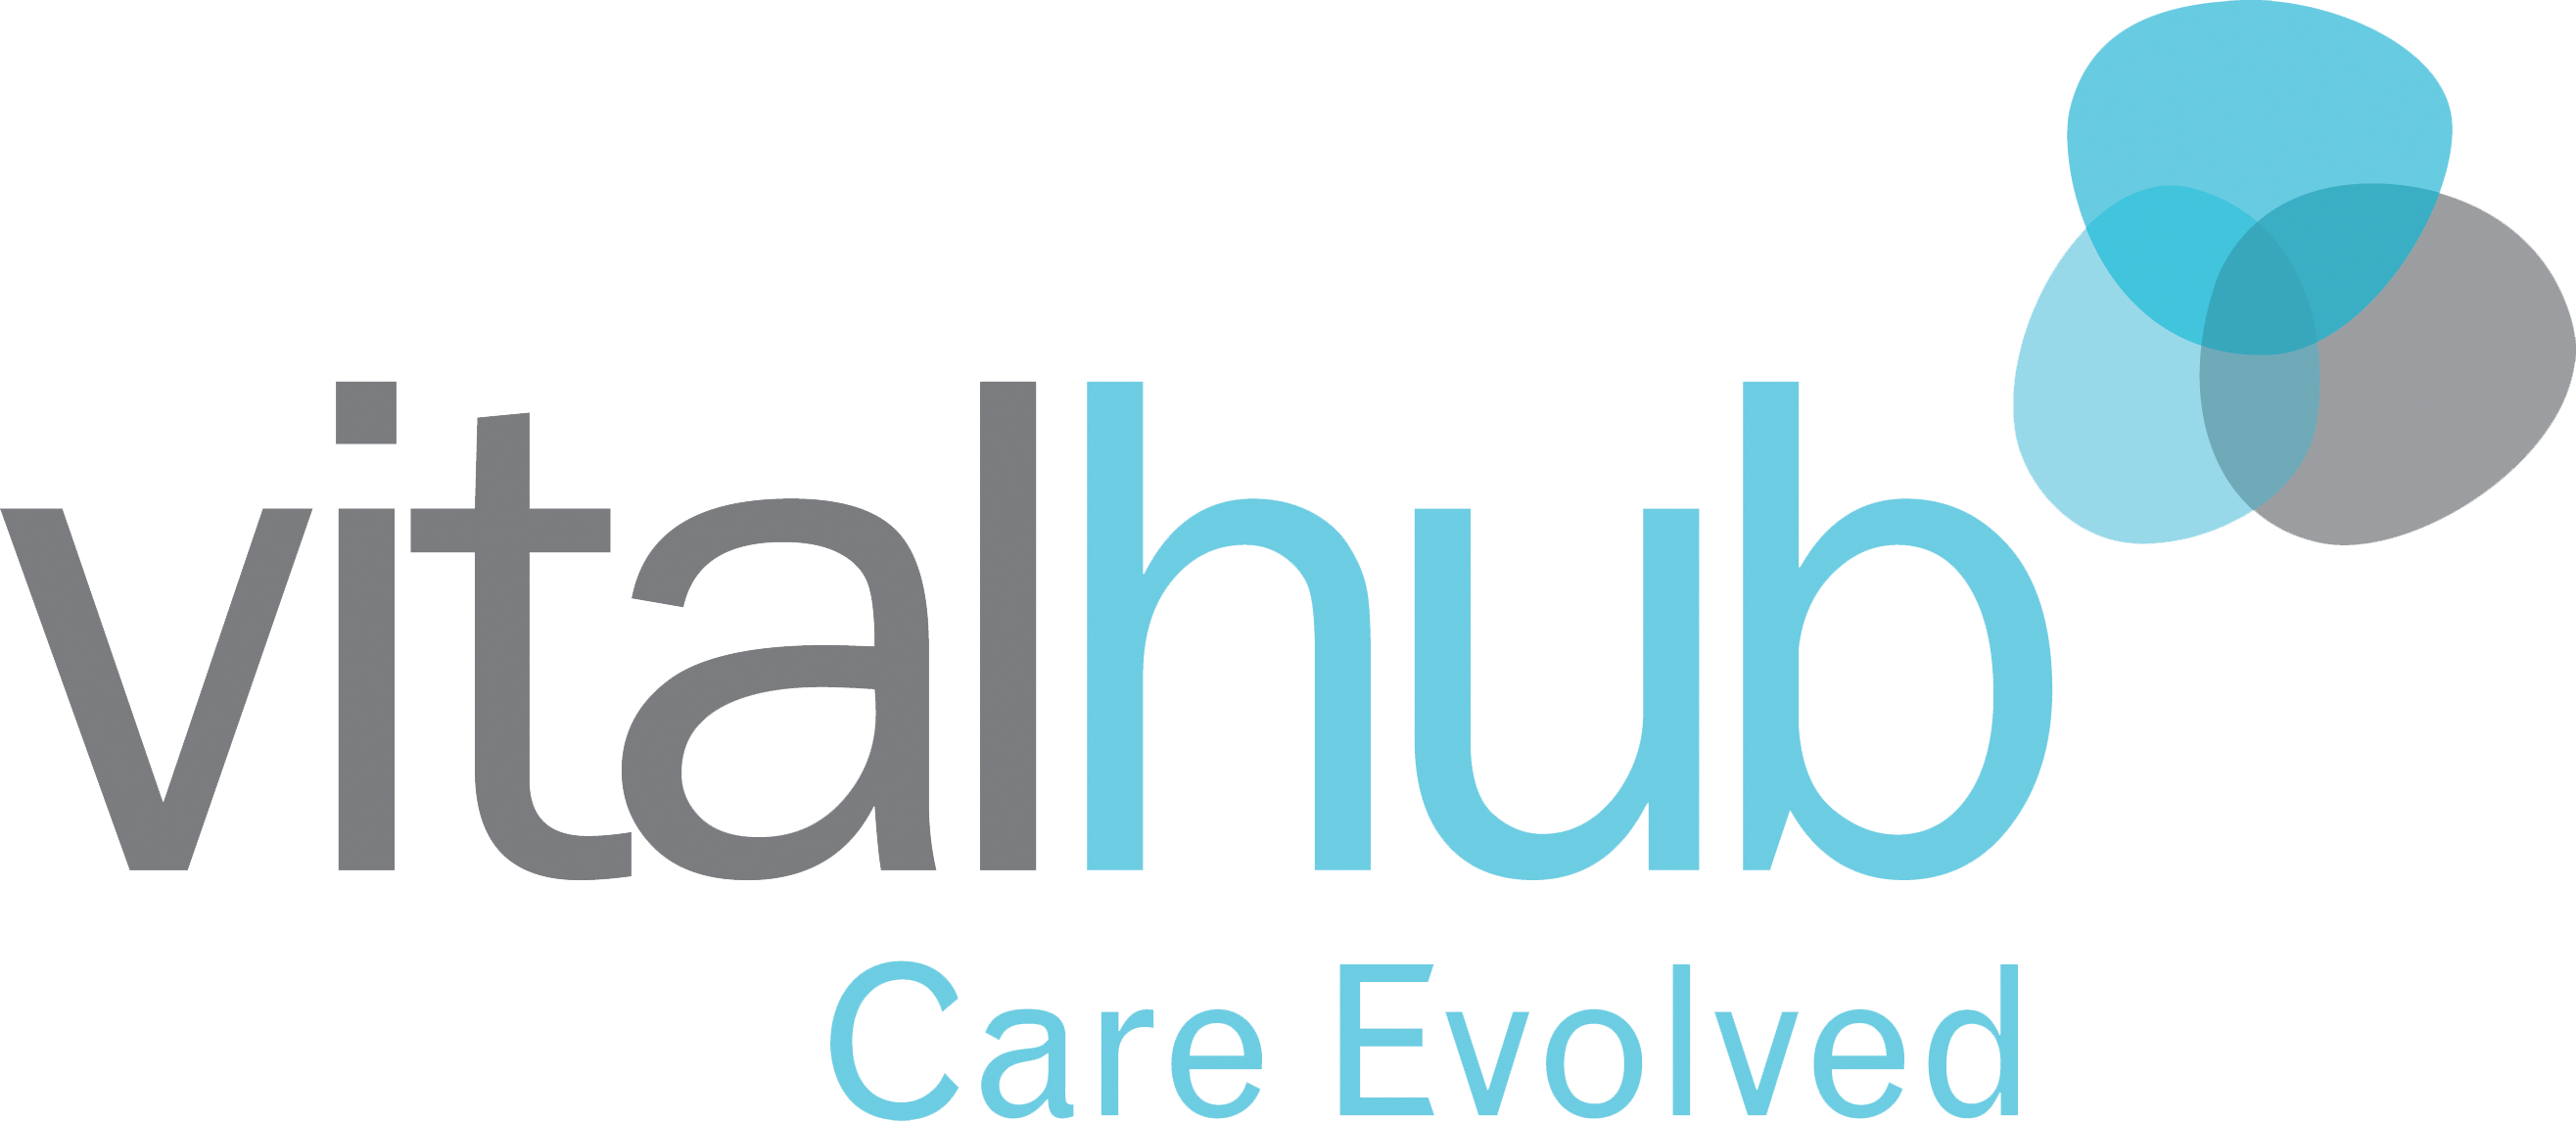 VitalHub Announces Deployment of Patient Flow Solution to Support the Management of the COVID-19 Pandemic in Windsor and Essex County (Southwestern Ontario)